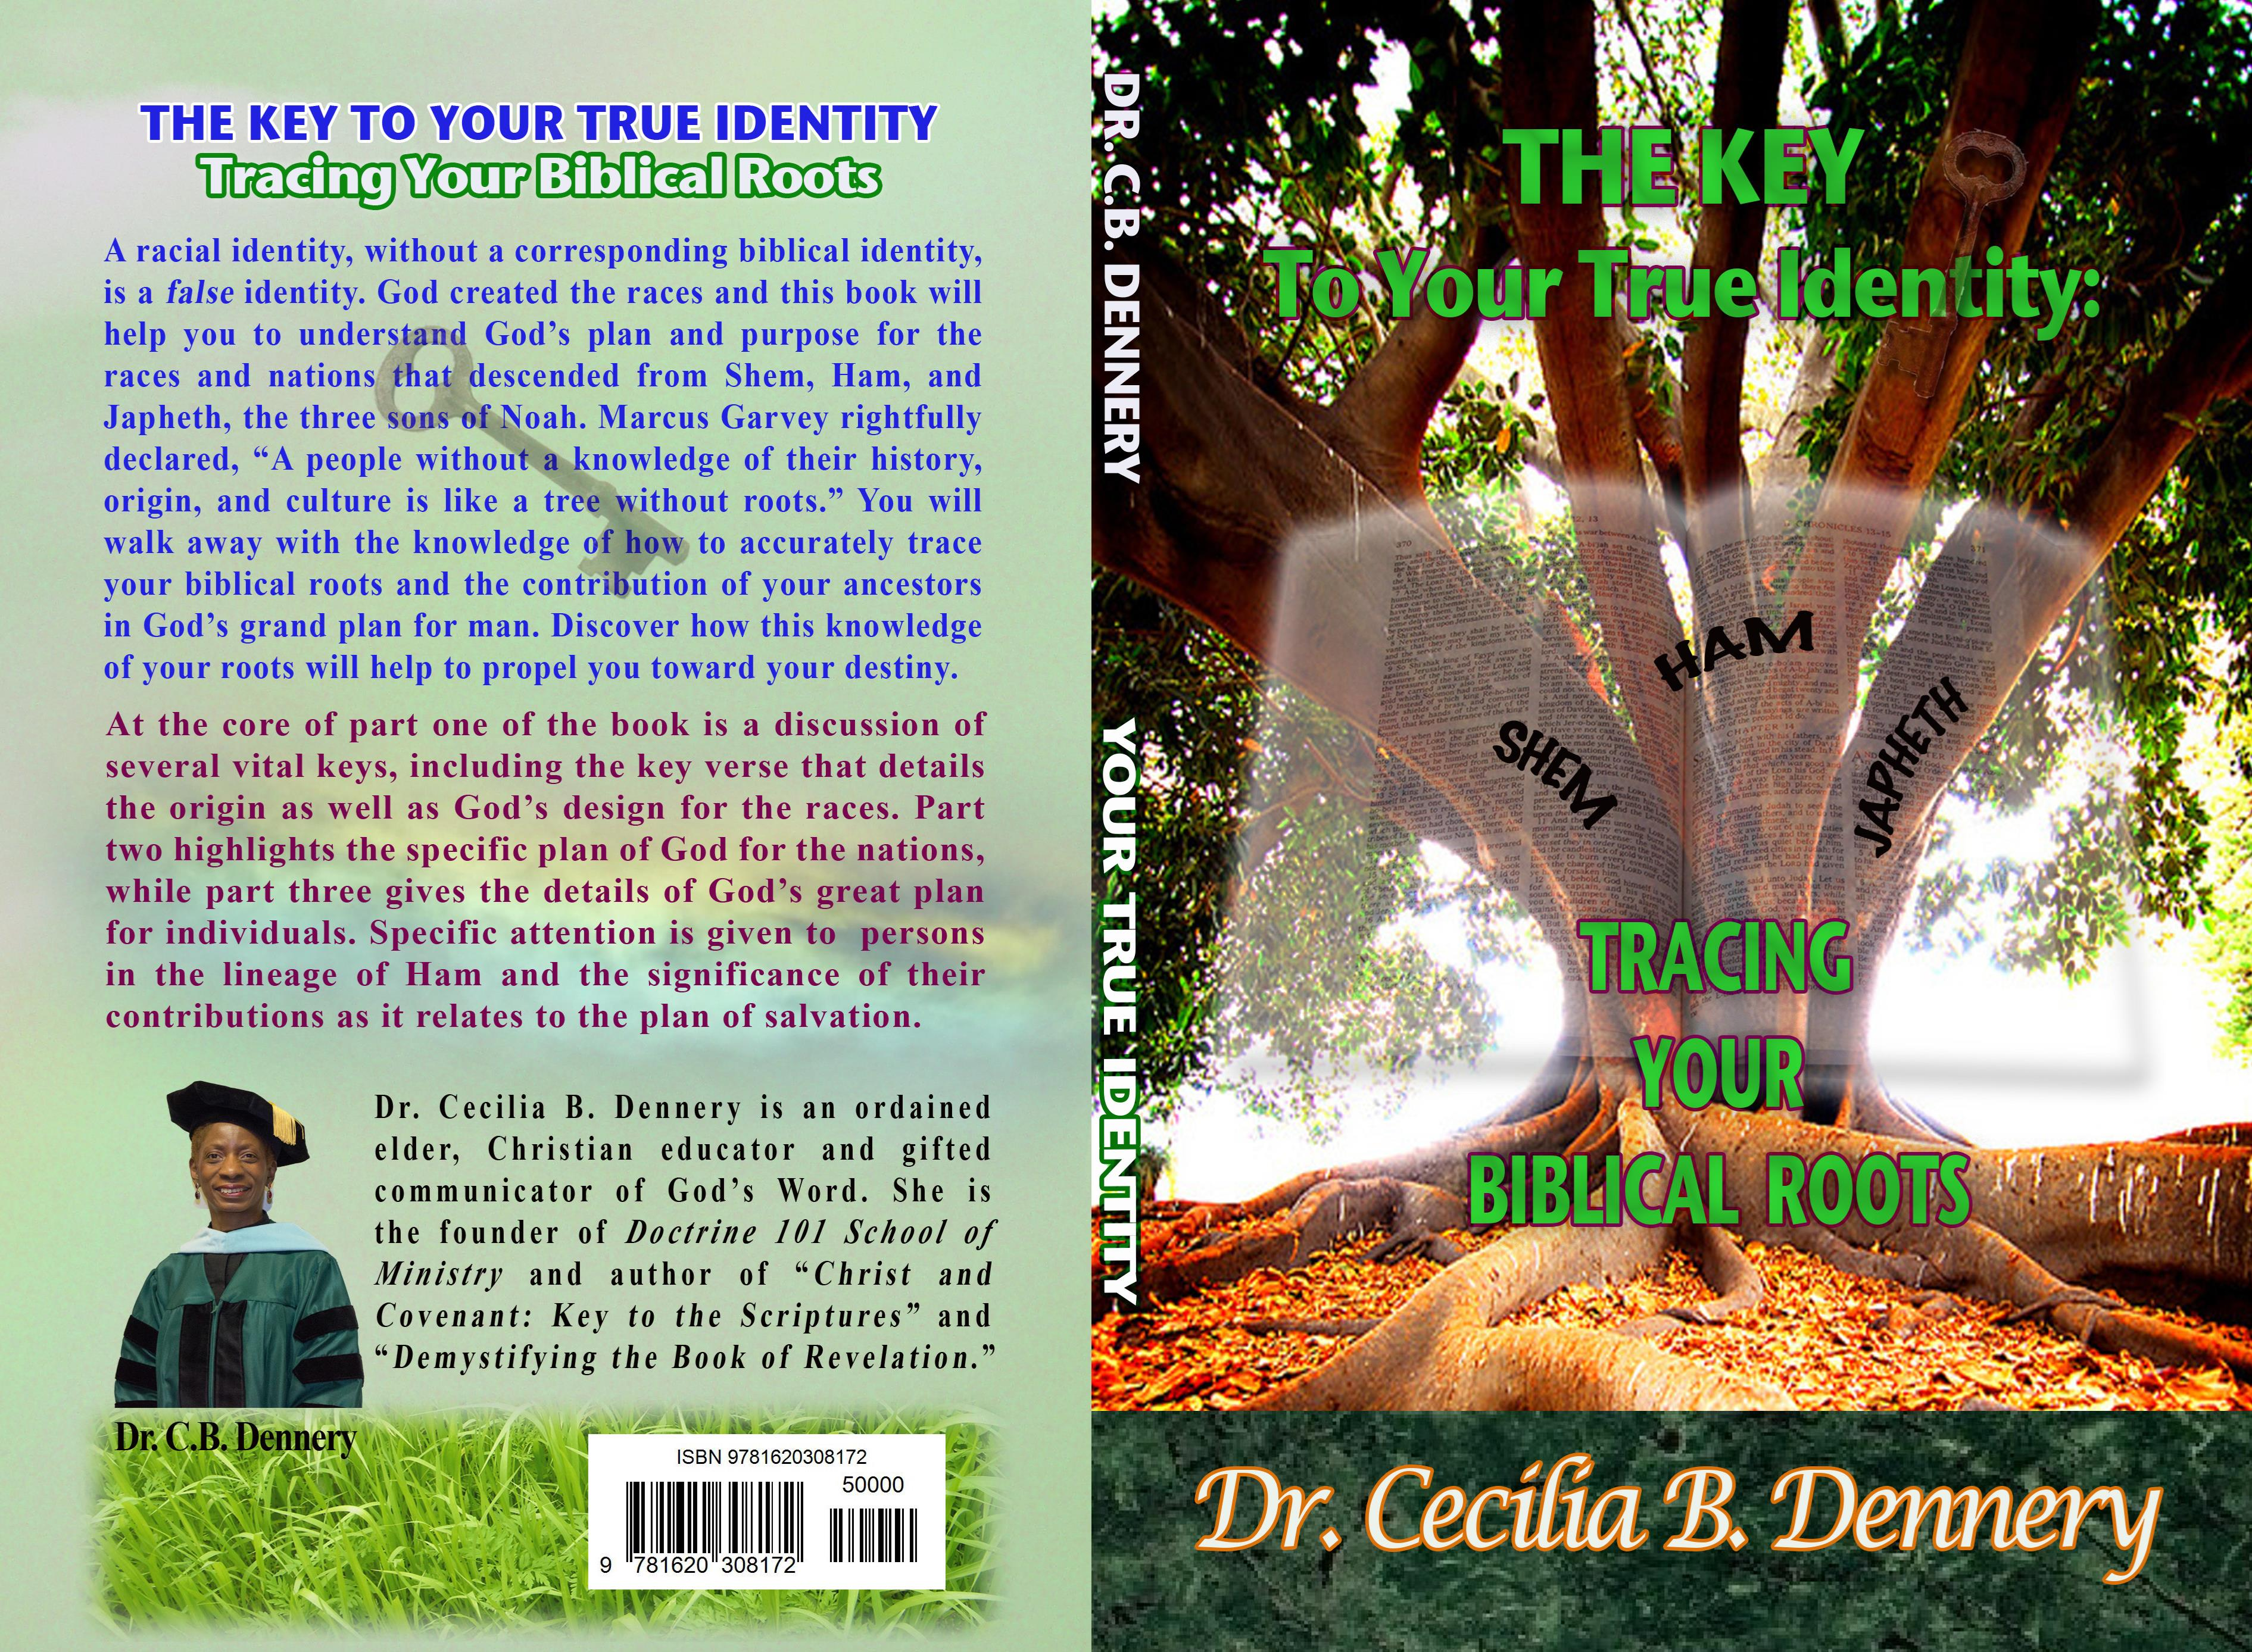 The Key to Your True Identity: Tracing Your Biblical Roots cover image